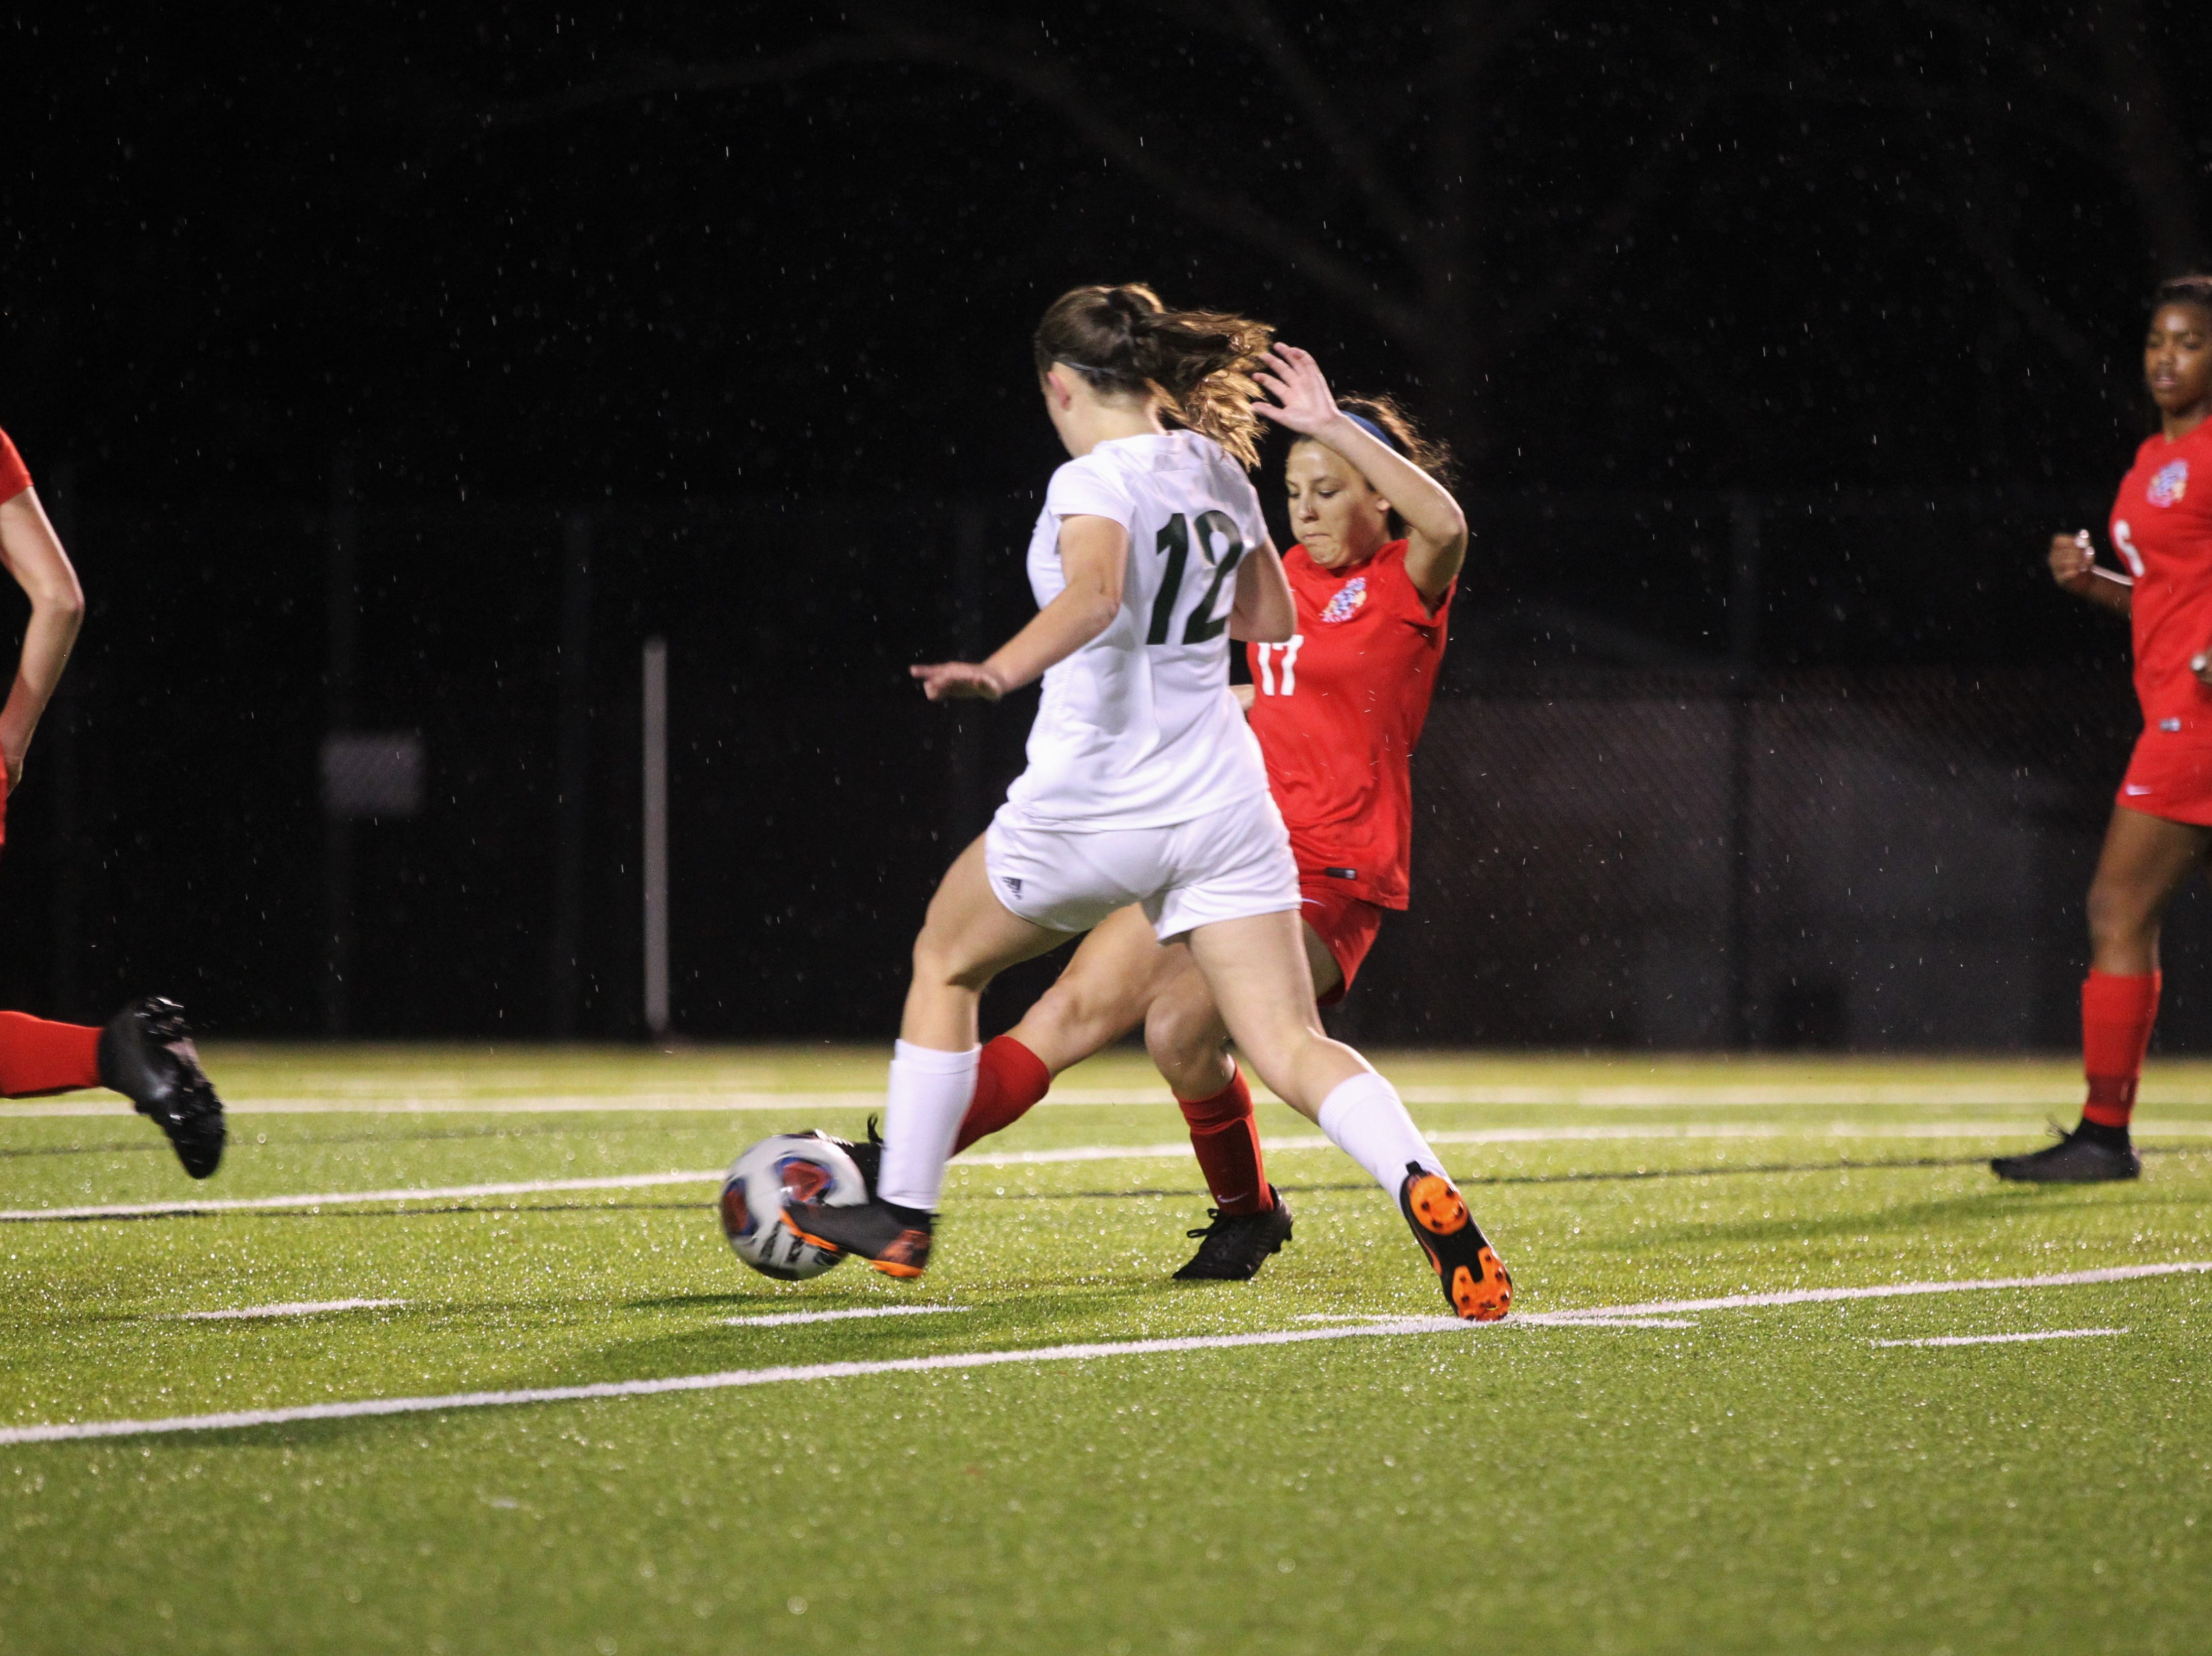 Lincoln's Meredith Camron can't get past Leon defender Leah Mazur as Leon's girls soccer team beat Lincoln in the District 2-4A championship on Feb. 1, 2019.